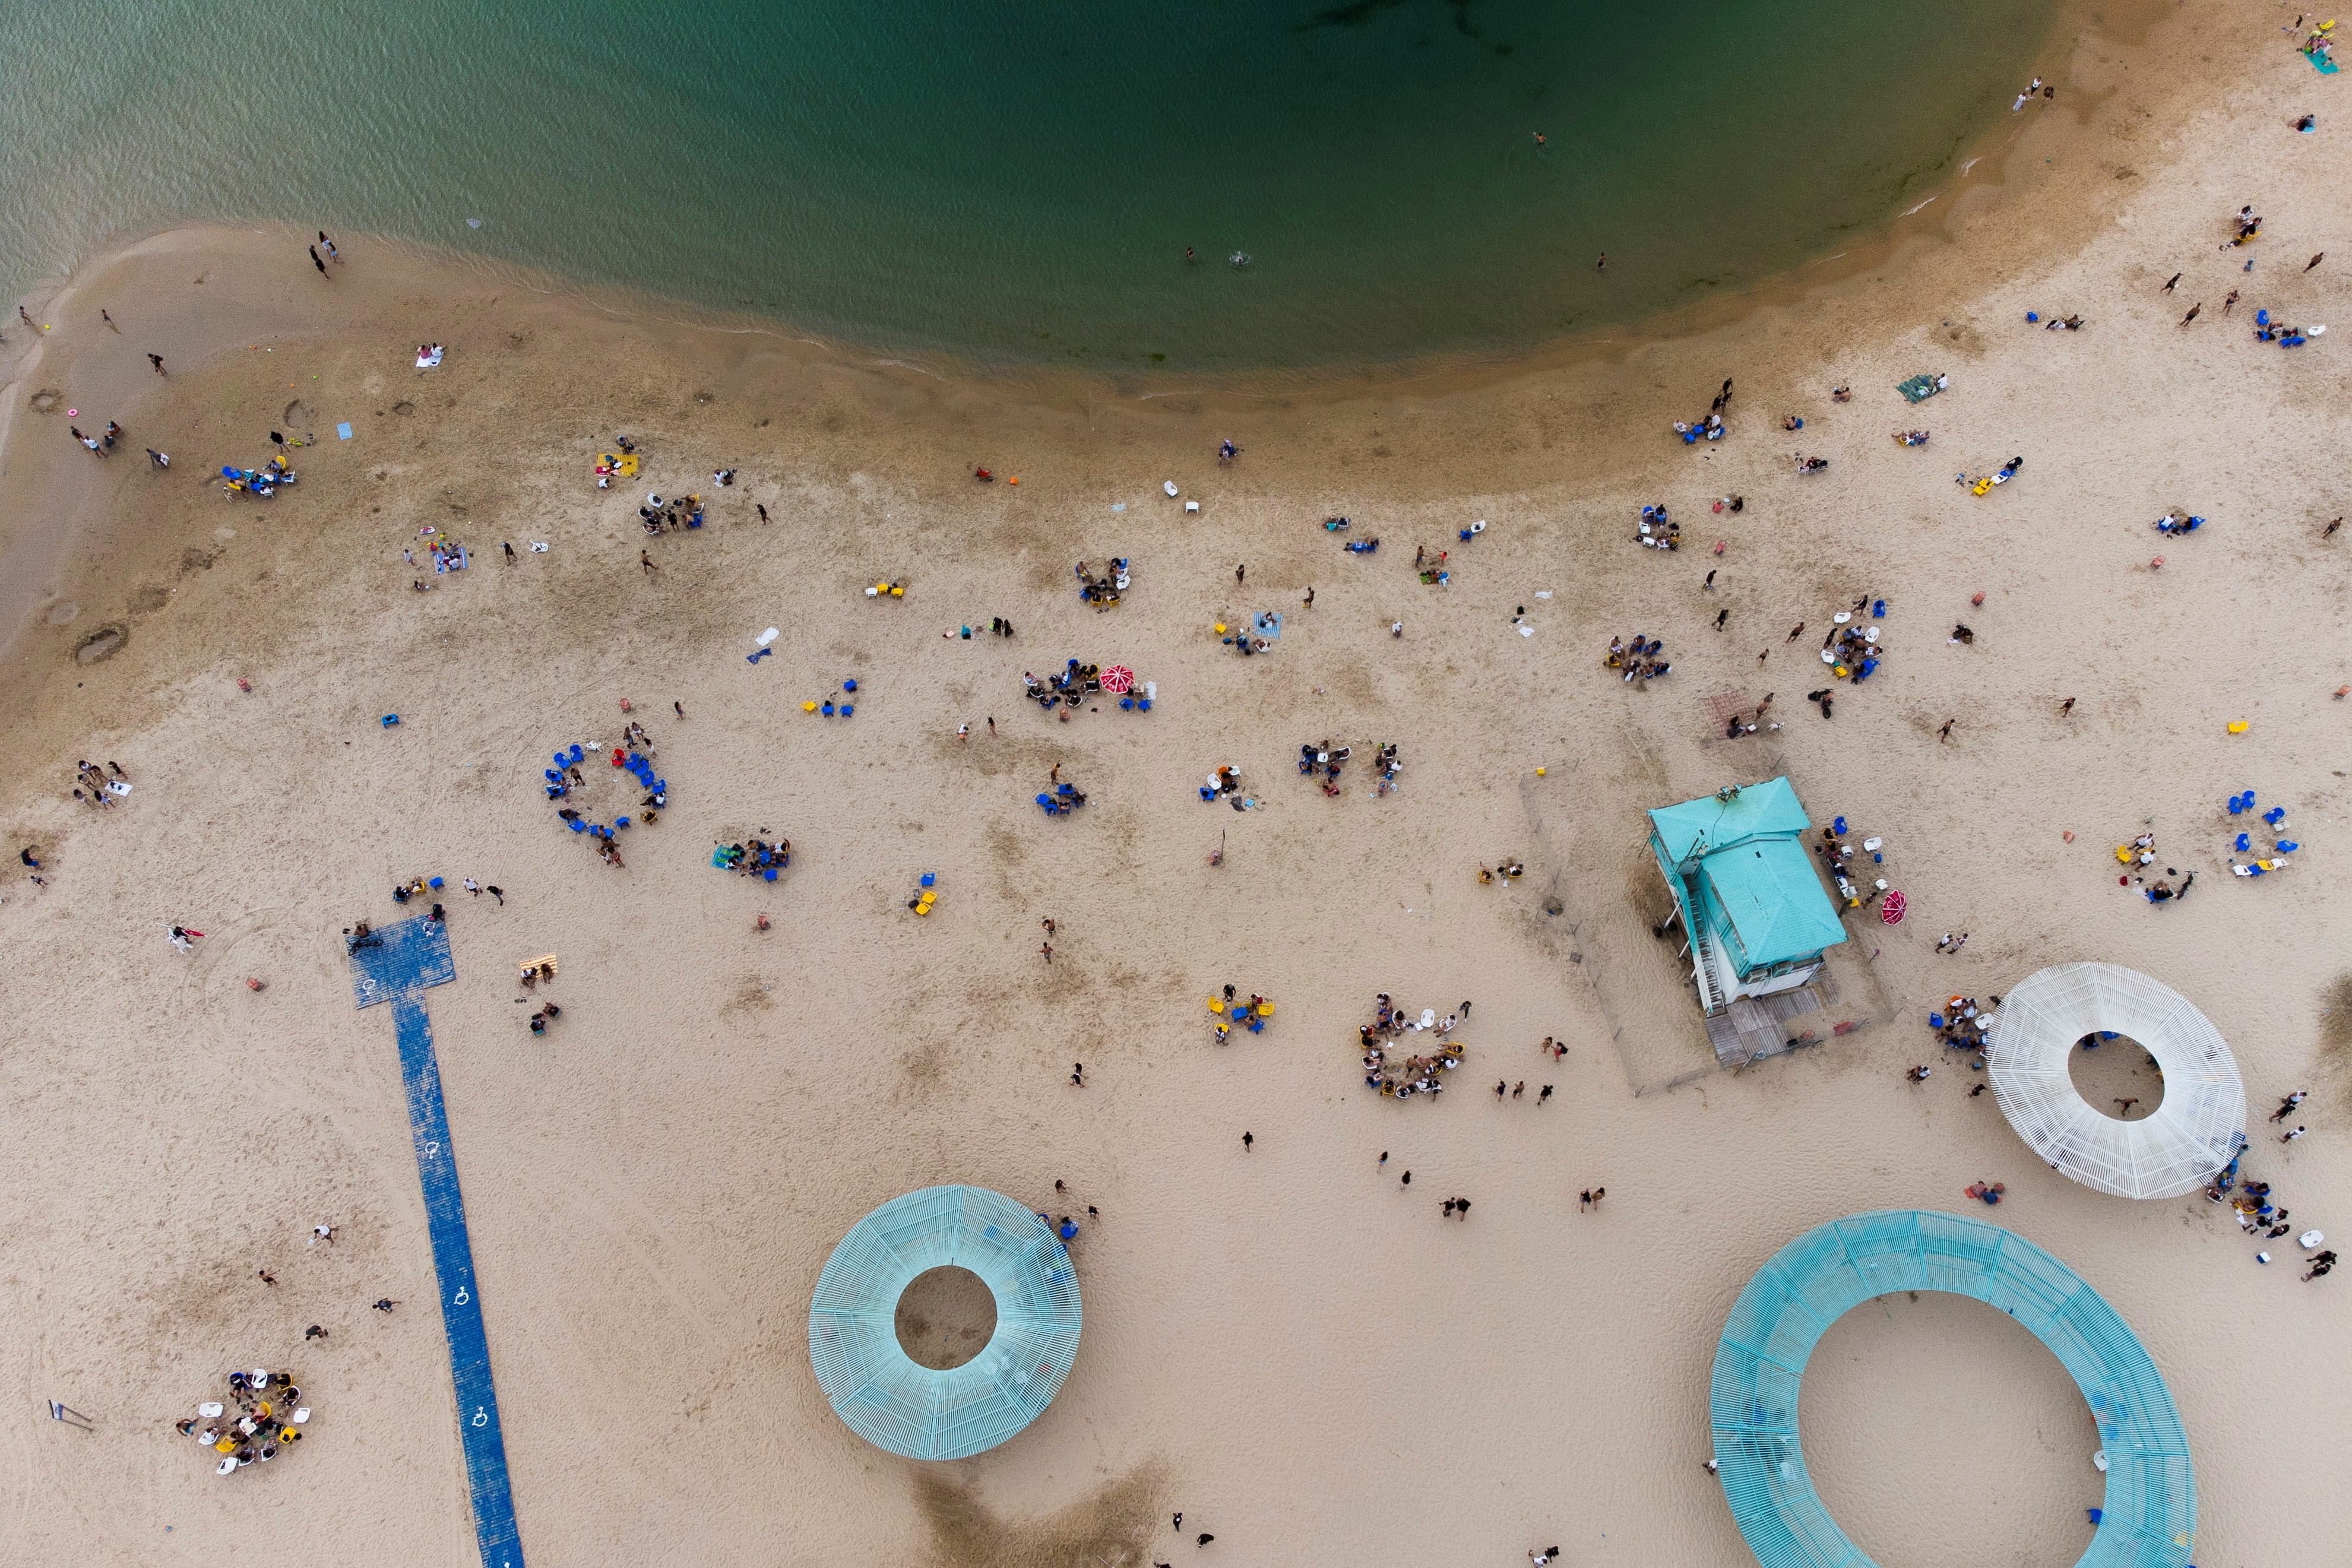 Israelis enjoy the beach of the Mediterranean during a heat wave as coronavirus disease (COVID-19) restrictions ease around the country, in Ashkelon Israel April 19, 2021. Picture taken with a drone. REUTERS/Amir Cohen - RC26ZM9KV543